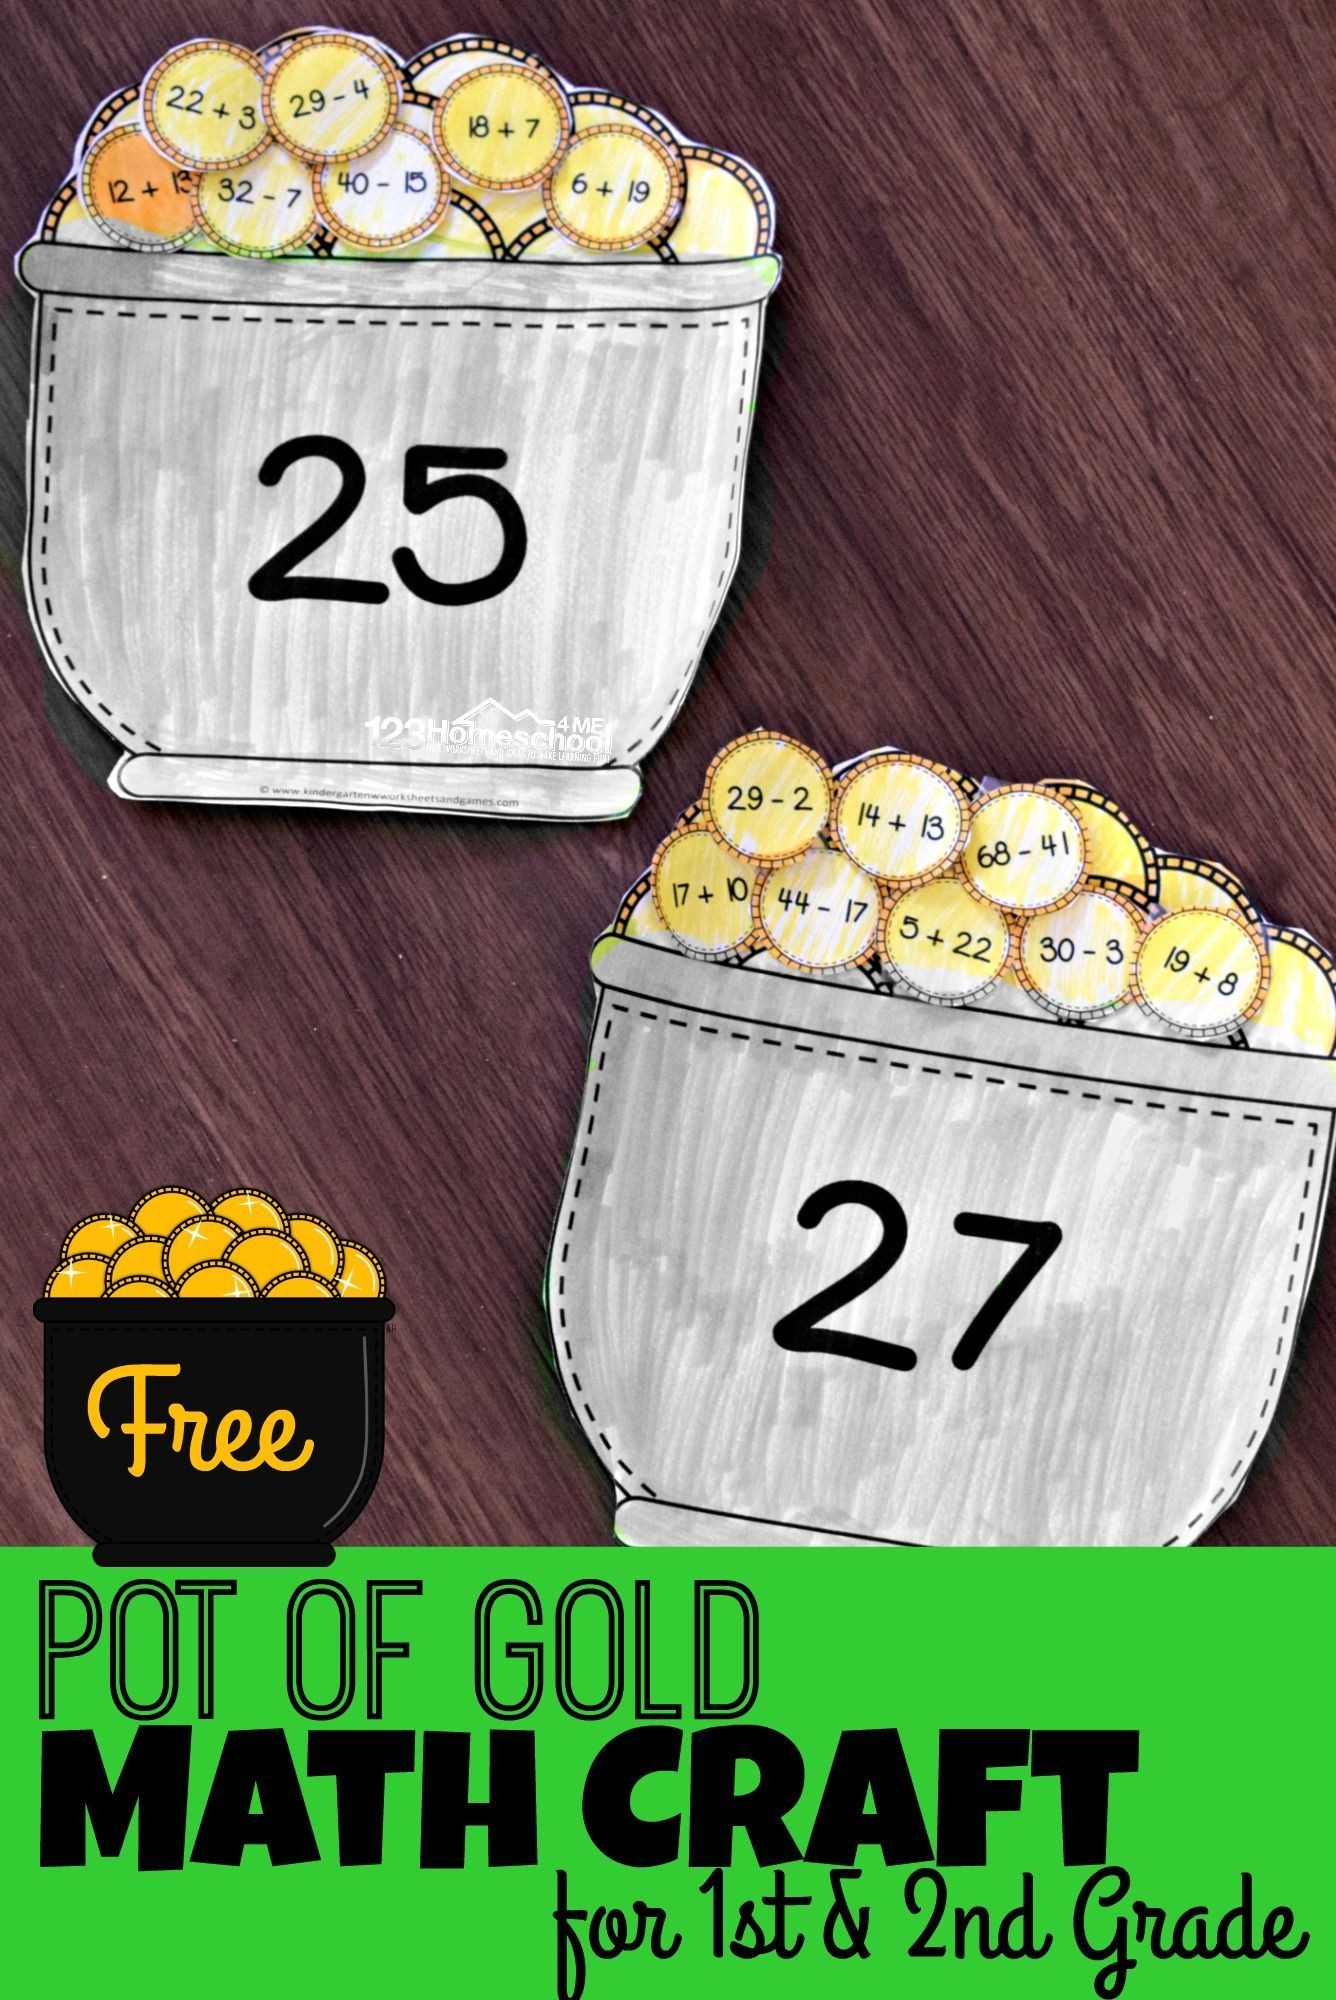 Pot Of Gold St Patrick S Day Math Craft Printables For 1st And 2nd Grade Math Crafts St Patricks Day Crafts For Kids St Patrick Day Activities [ 2000 x 1336 Pixel ]